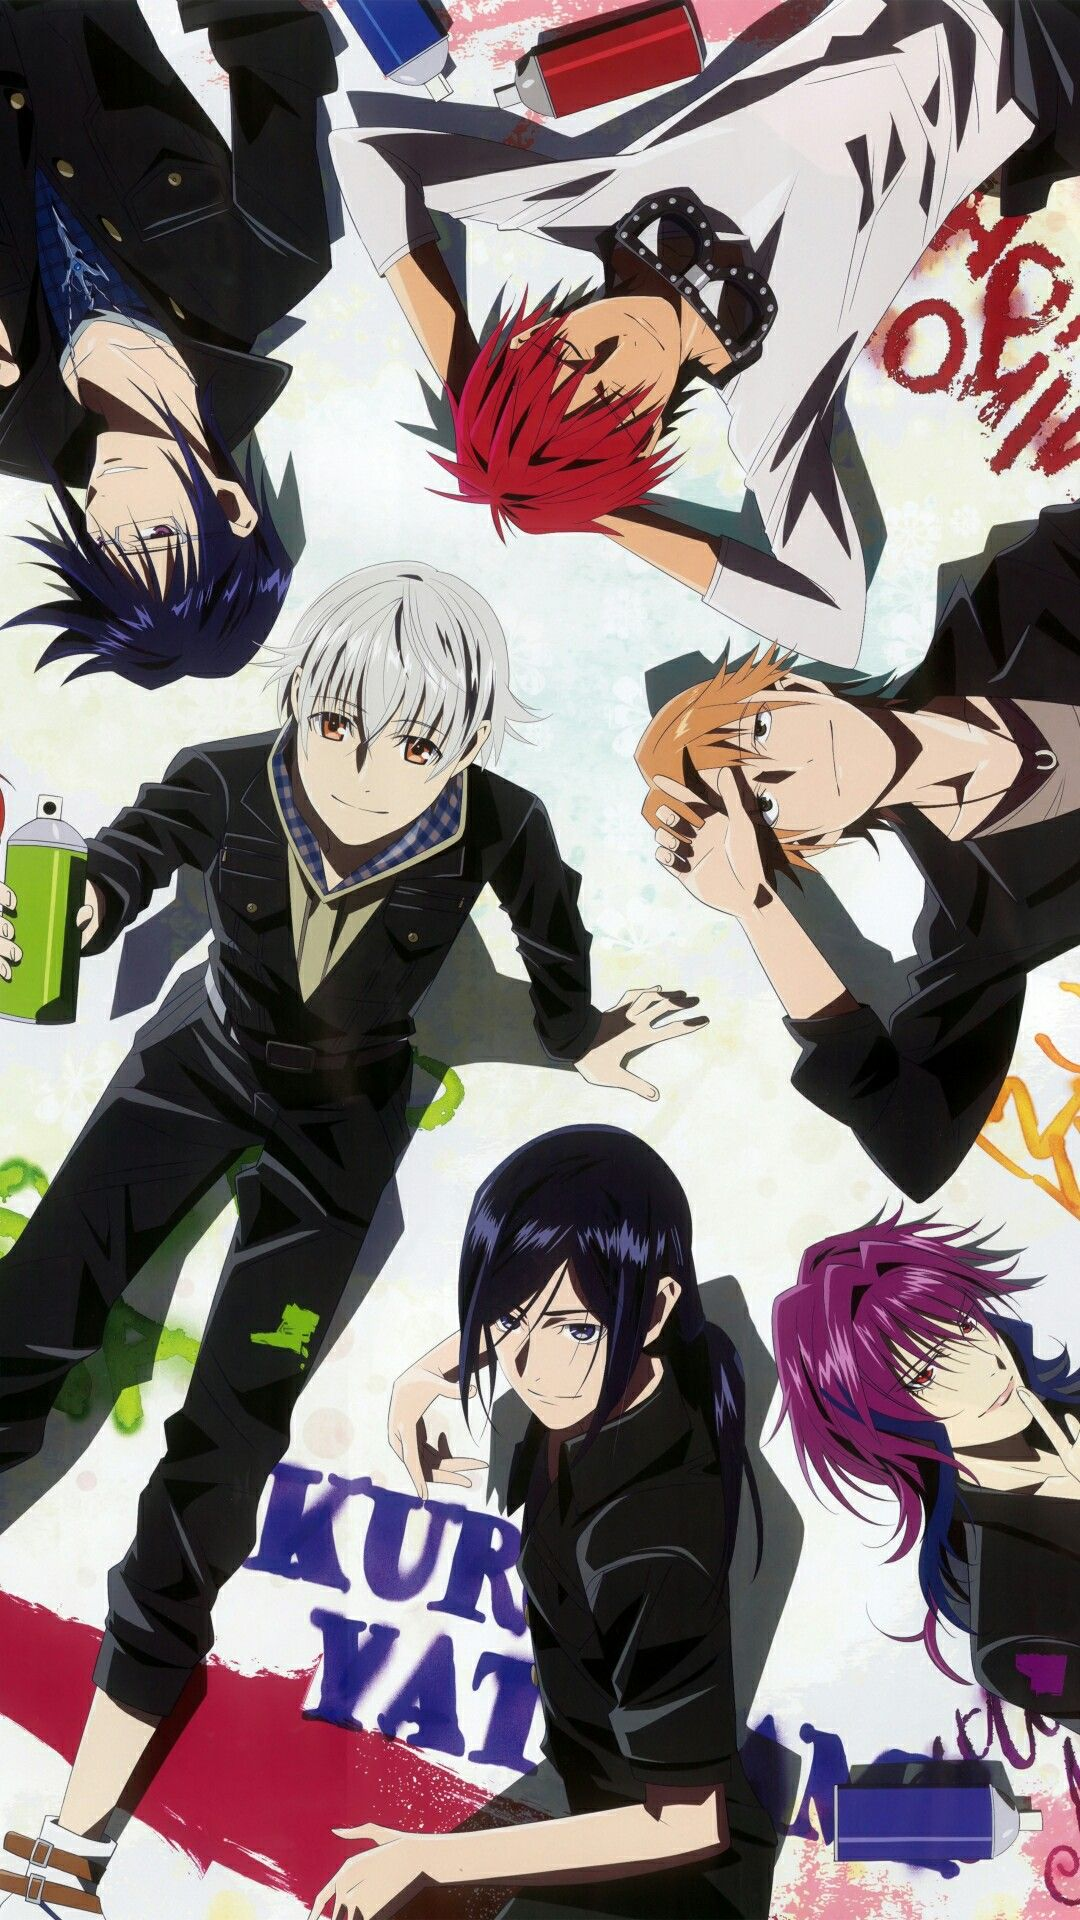 All Of Them Together K Project Anime K Project K Project Anime All anime together wallpaper